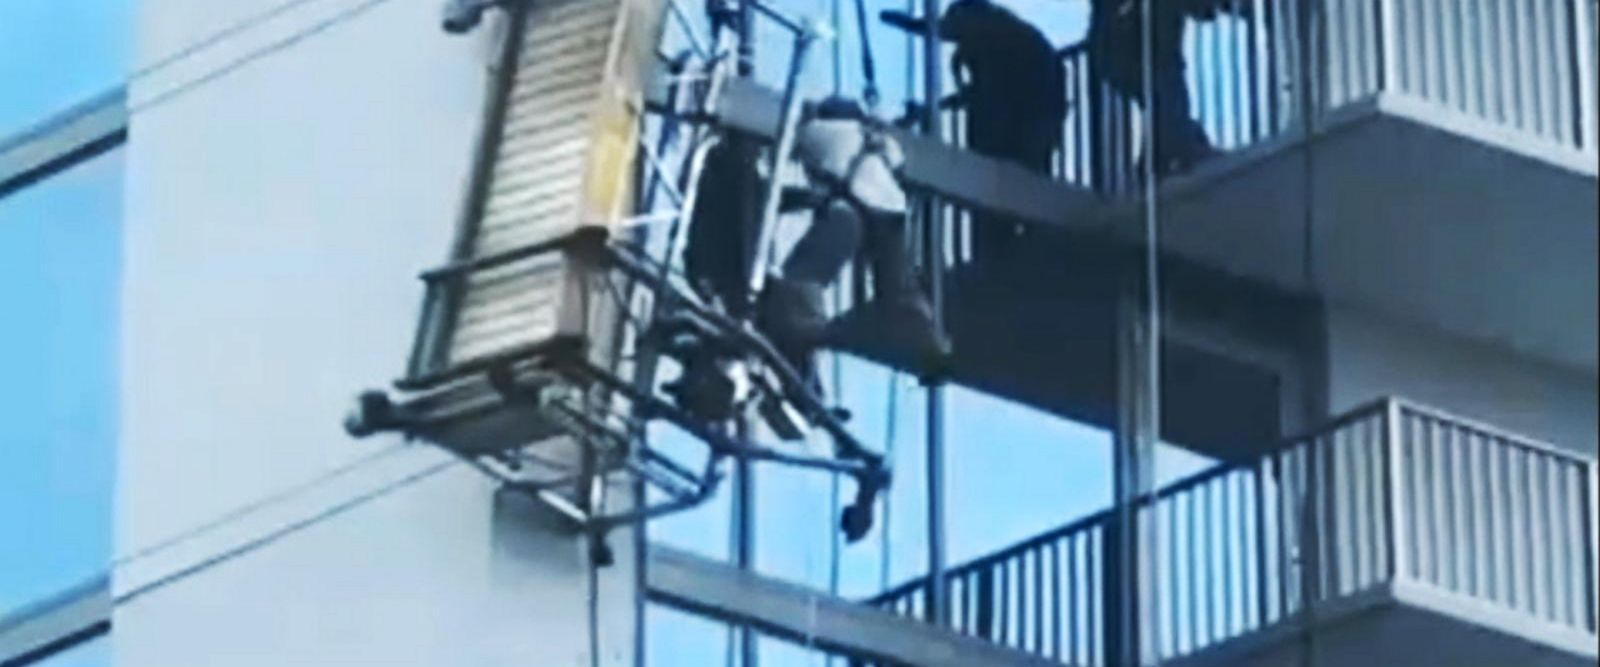 VIDEO: Workers left dangling after scaffold collapse in Atlanta